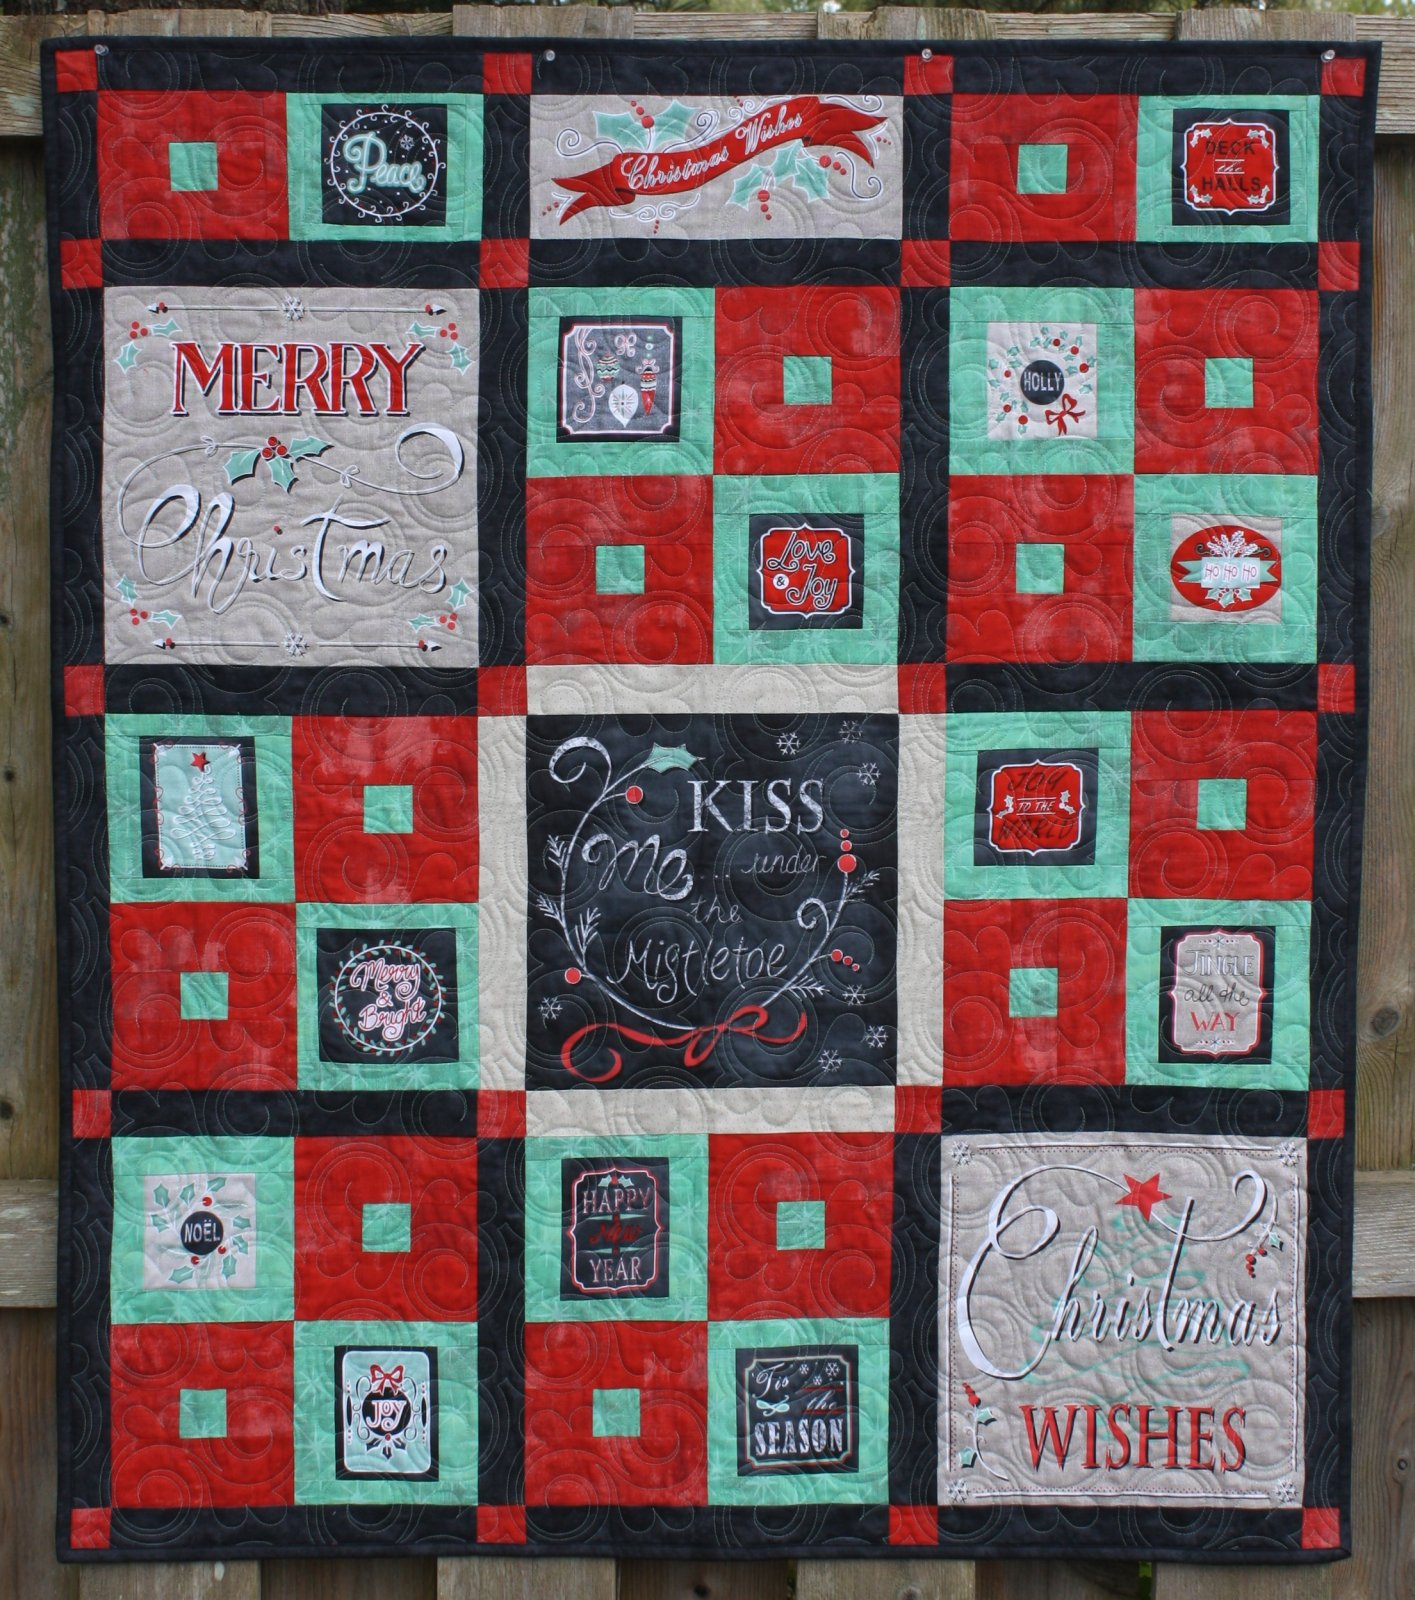 Christmas Wishes Quilt Kit